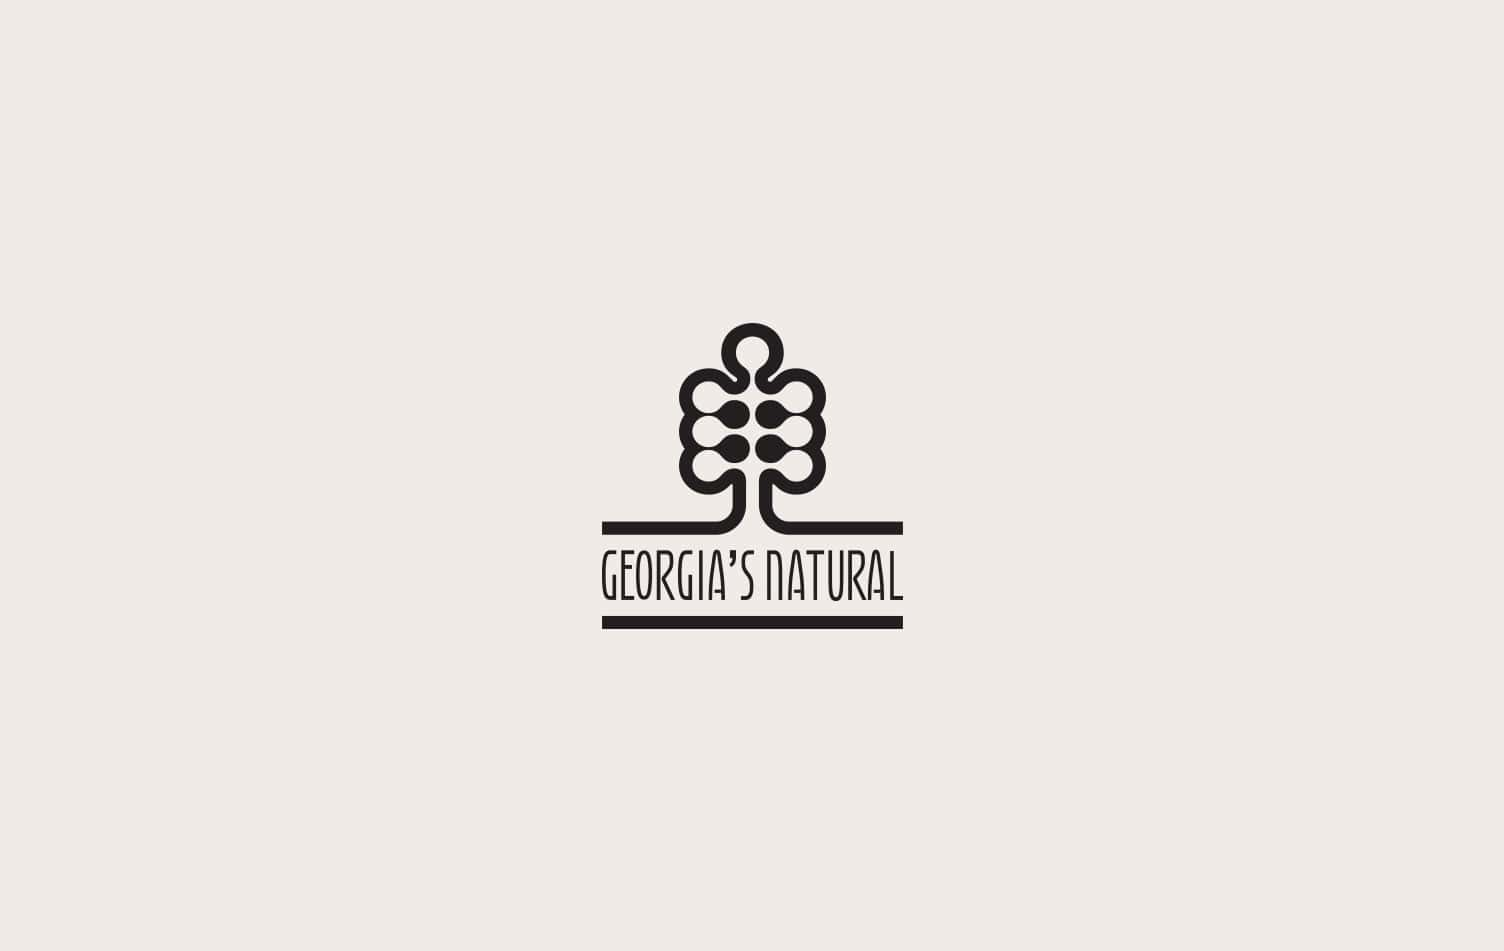 Georgia's Natural Logo Design